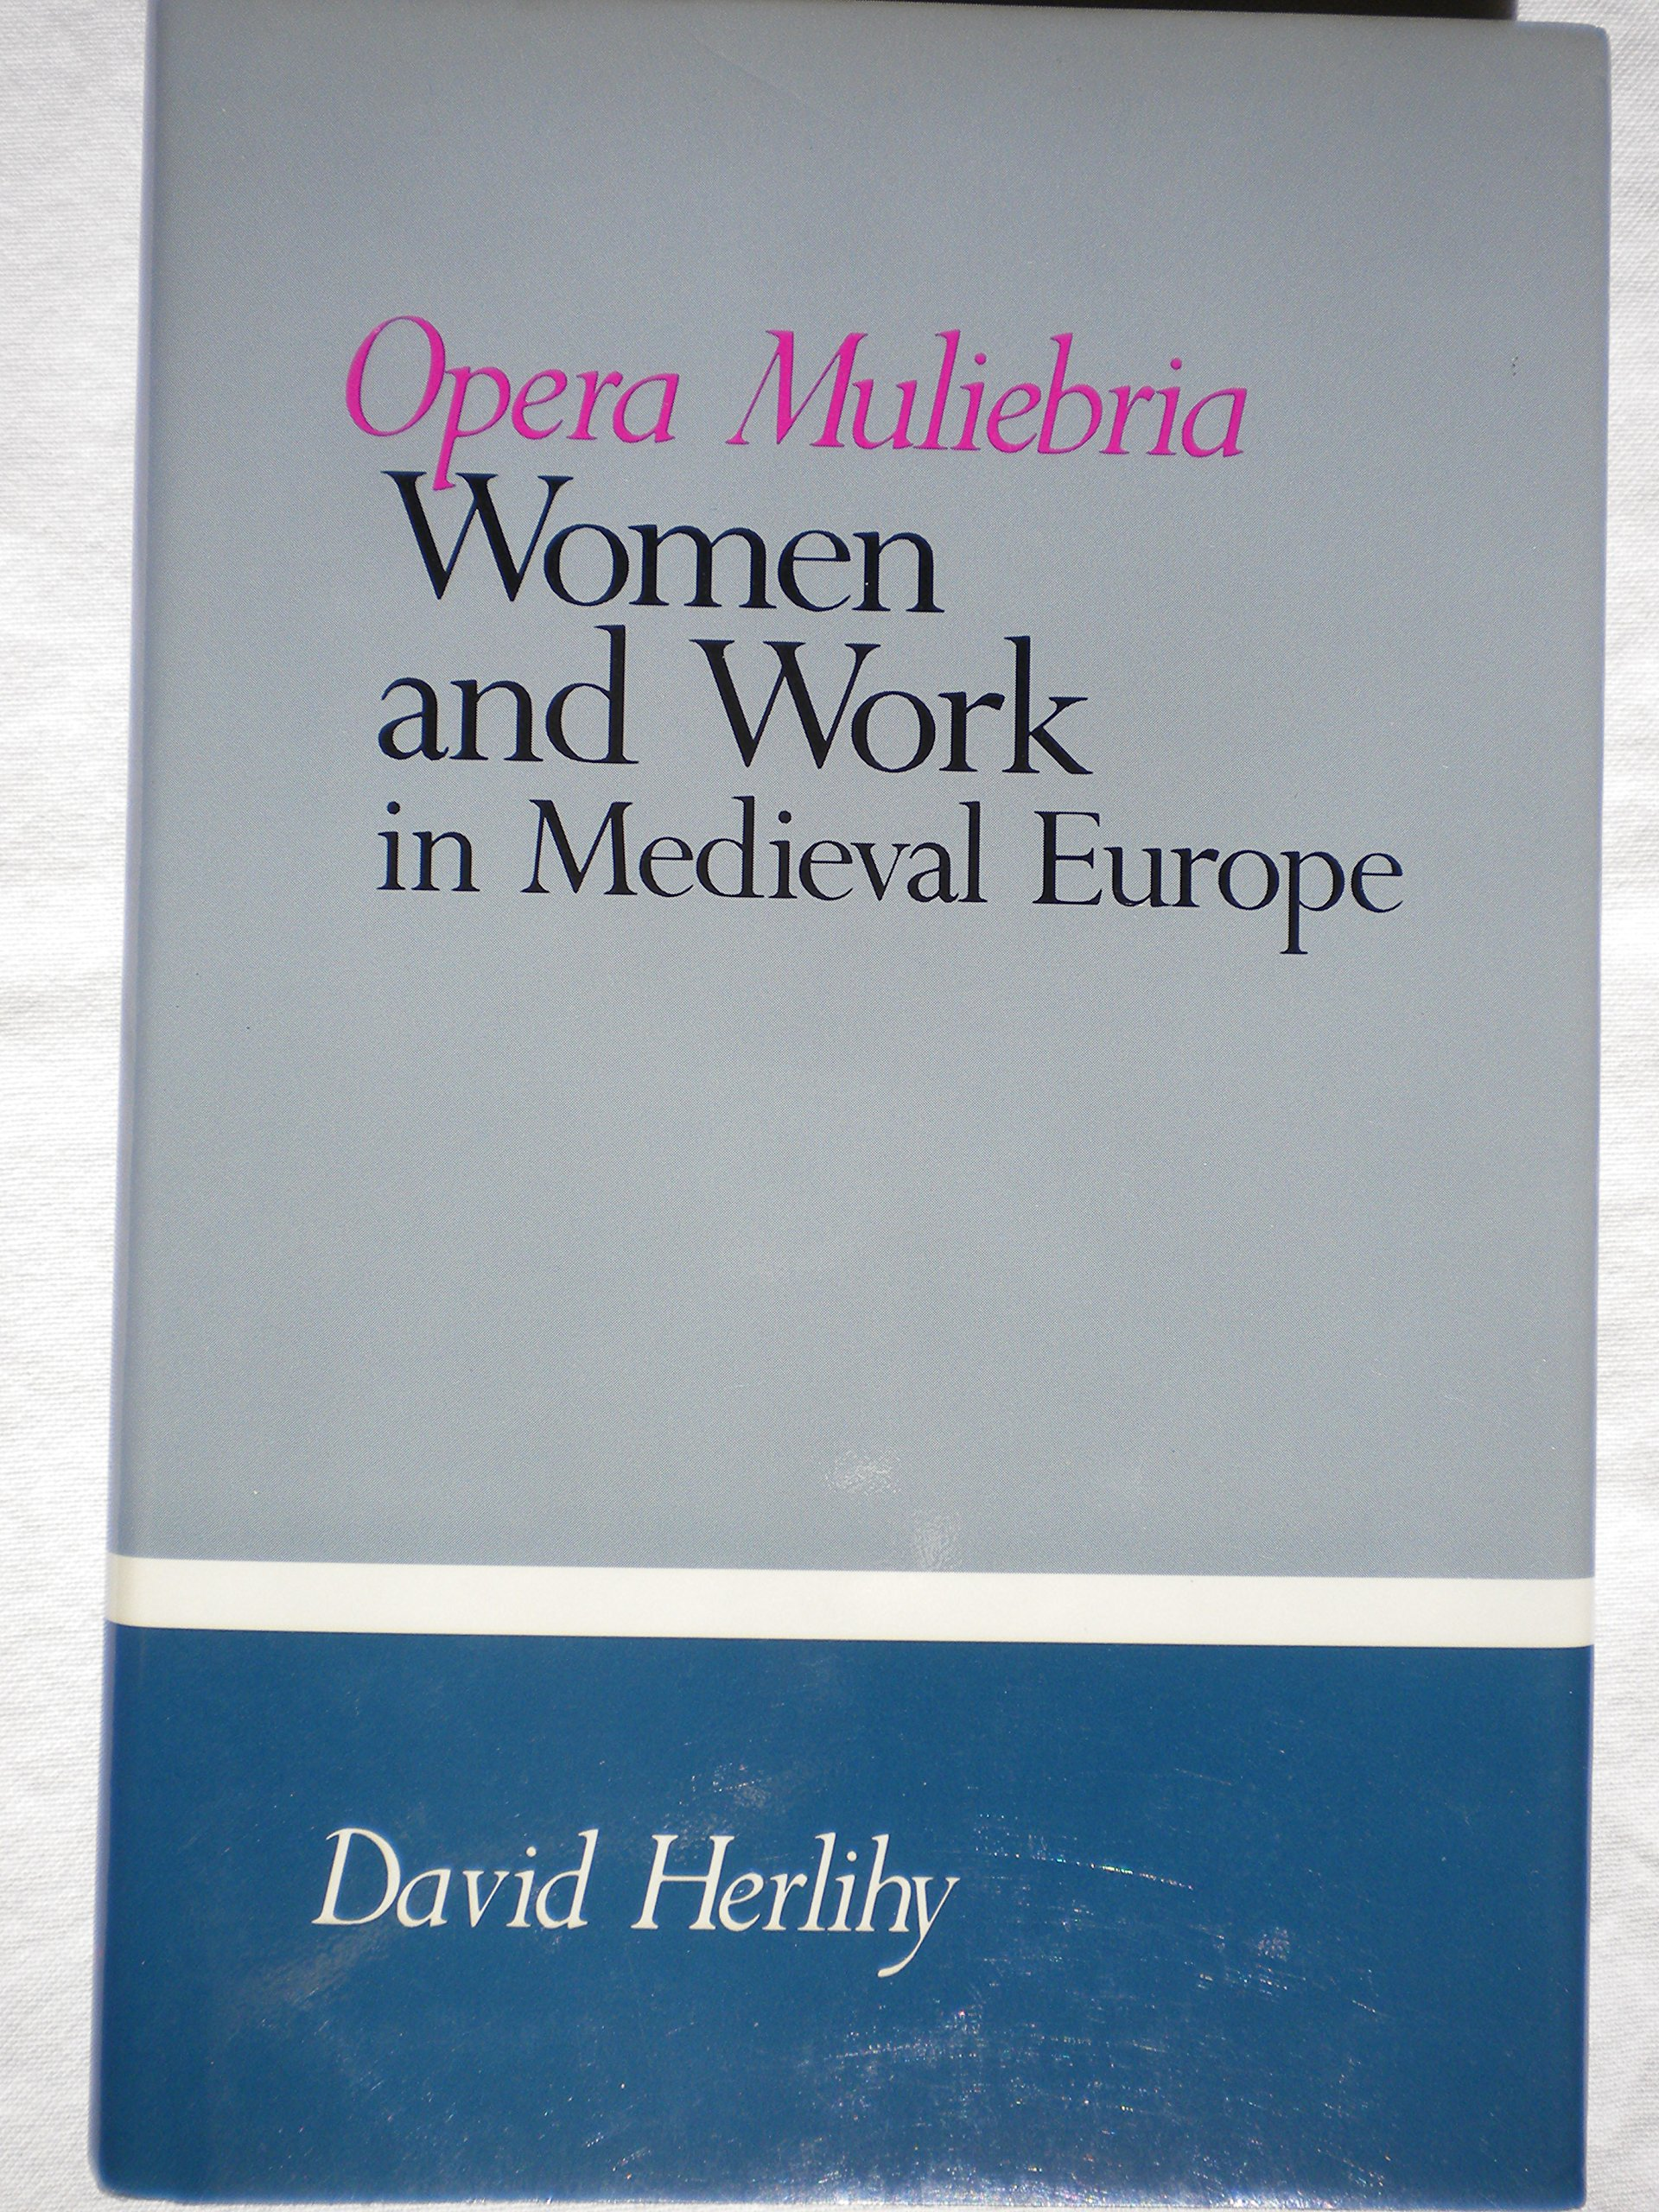 Opera Muliebria: Women and Work in Medieval Europe: David Herlihy ...